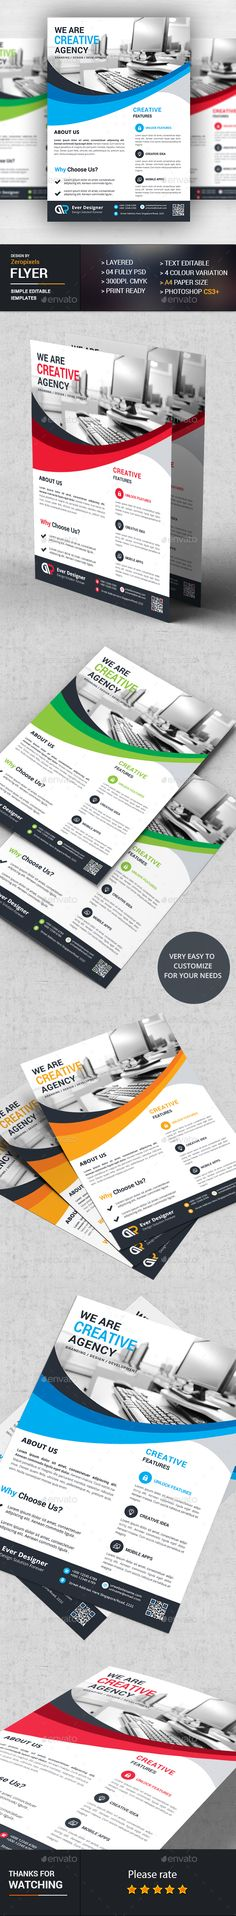 Flyer Template PSD. Download here: https://graphicriver.net/item/flyer/17283644?ref=ksioks